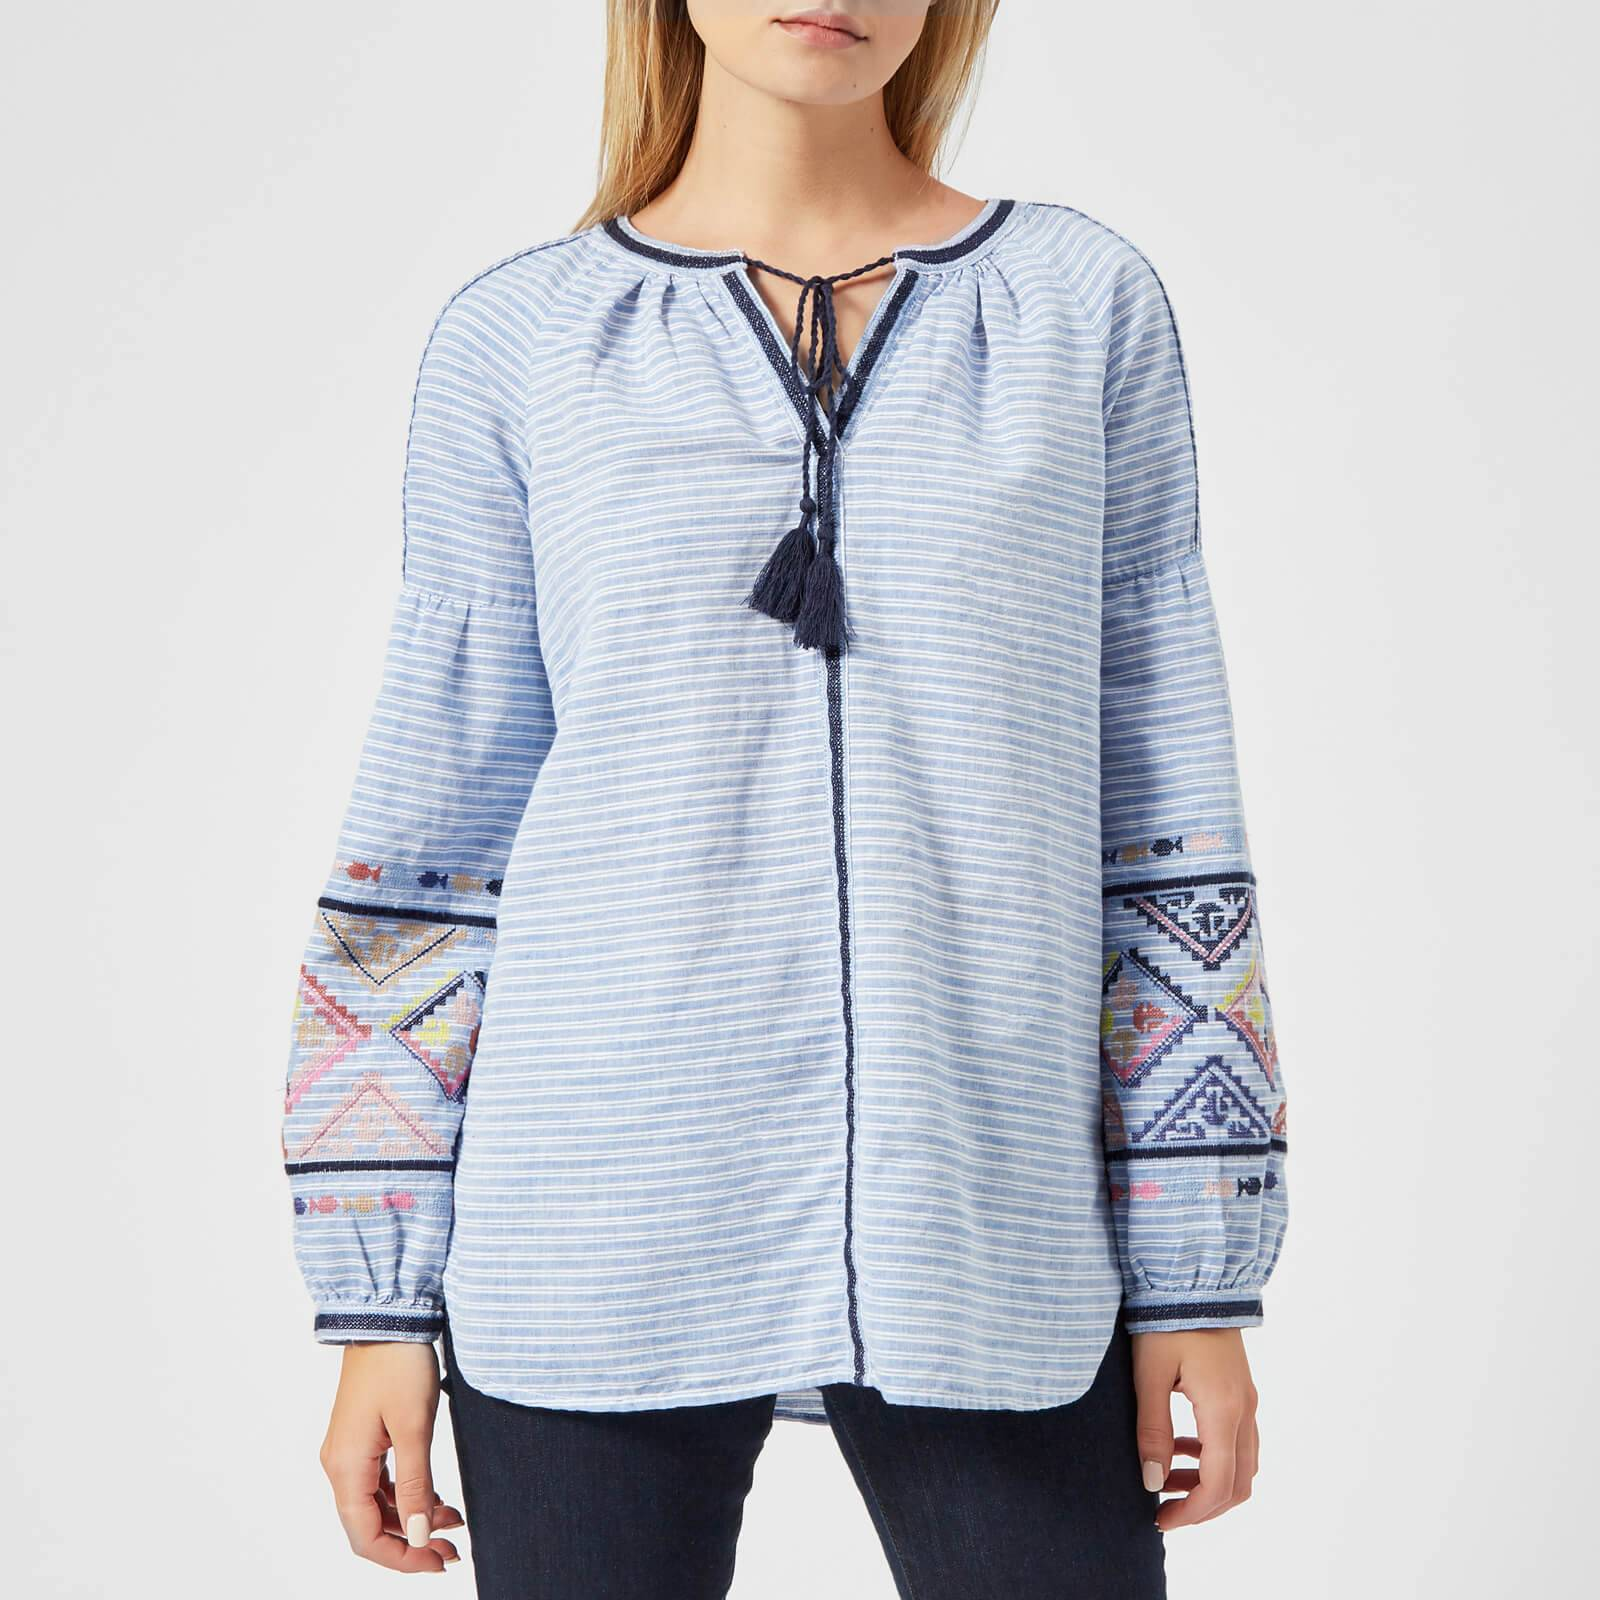 Joules Women's Yolanda Long Sleeve Embroidered Shirt - Light Blue Steel - UK 14 - Blue